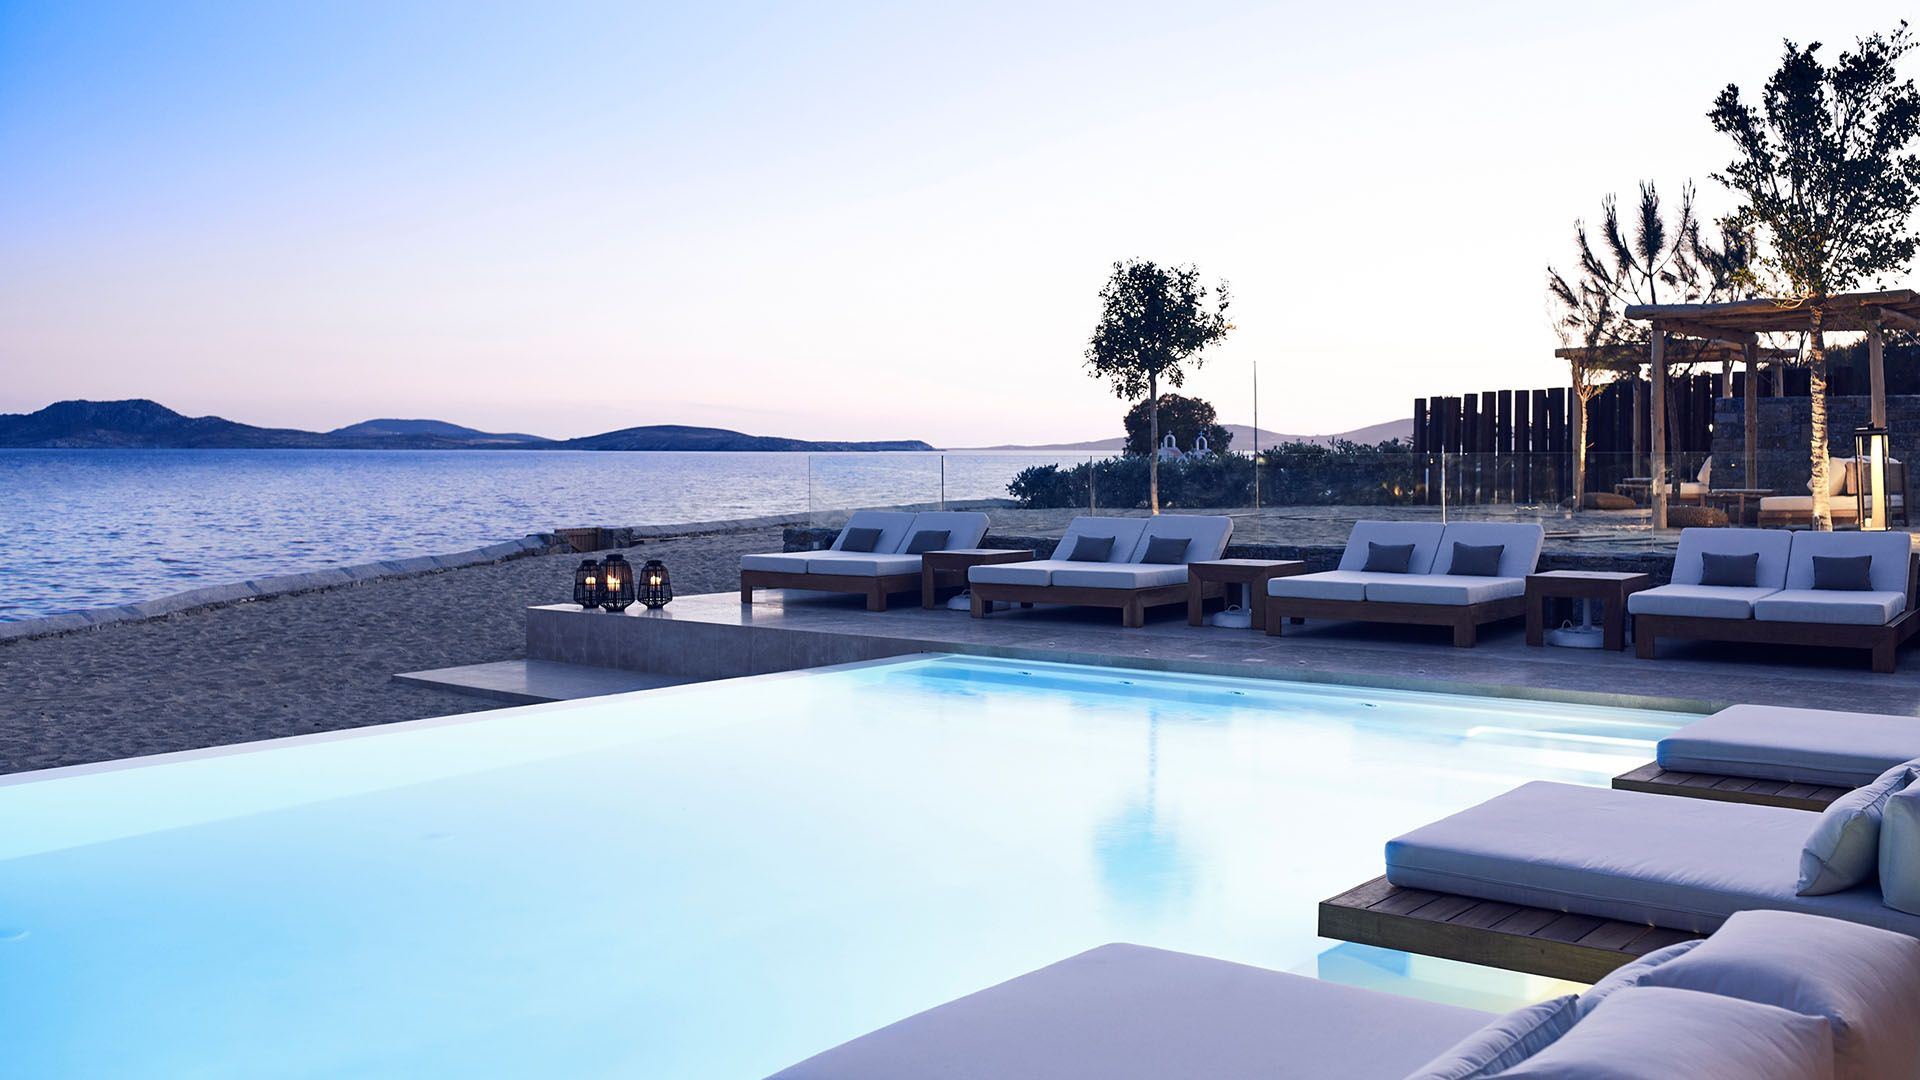 The Hotel Bill Coo Boutique Hotel With Images Luxury Hotel